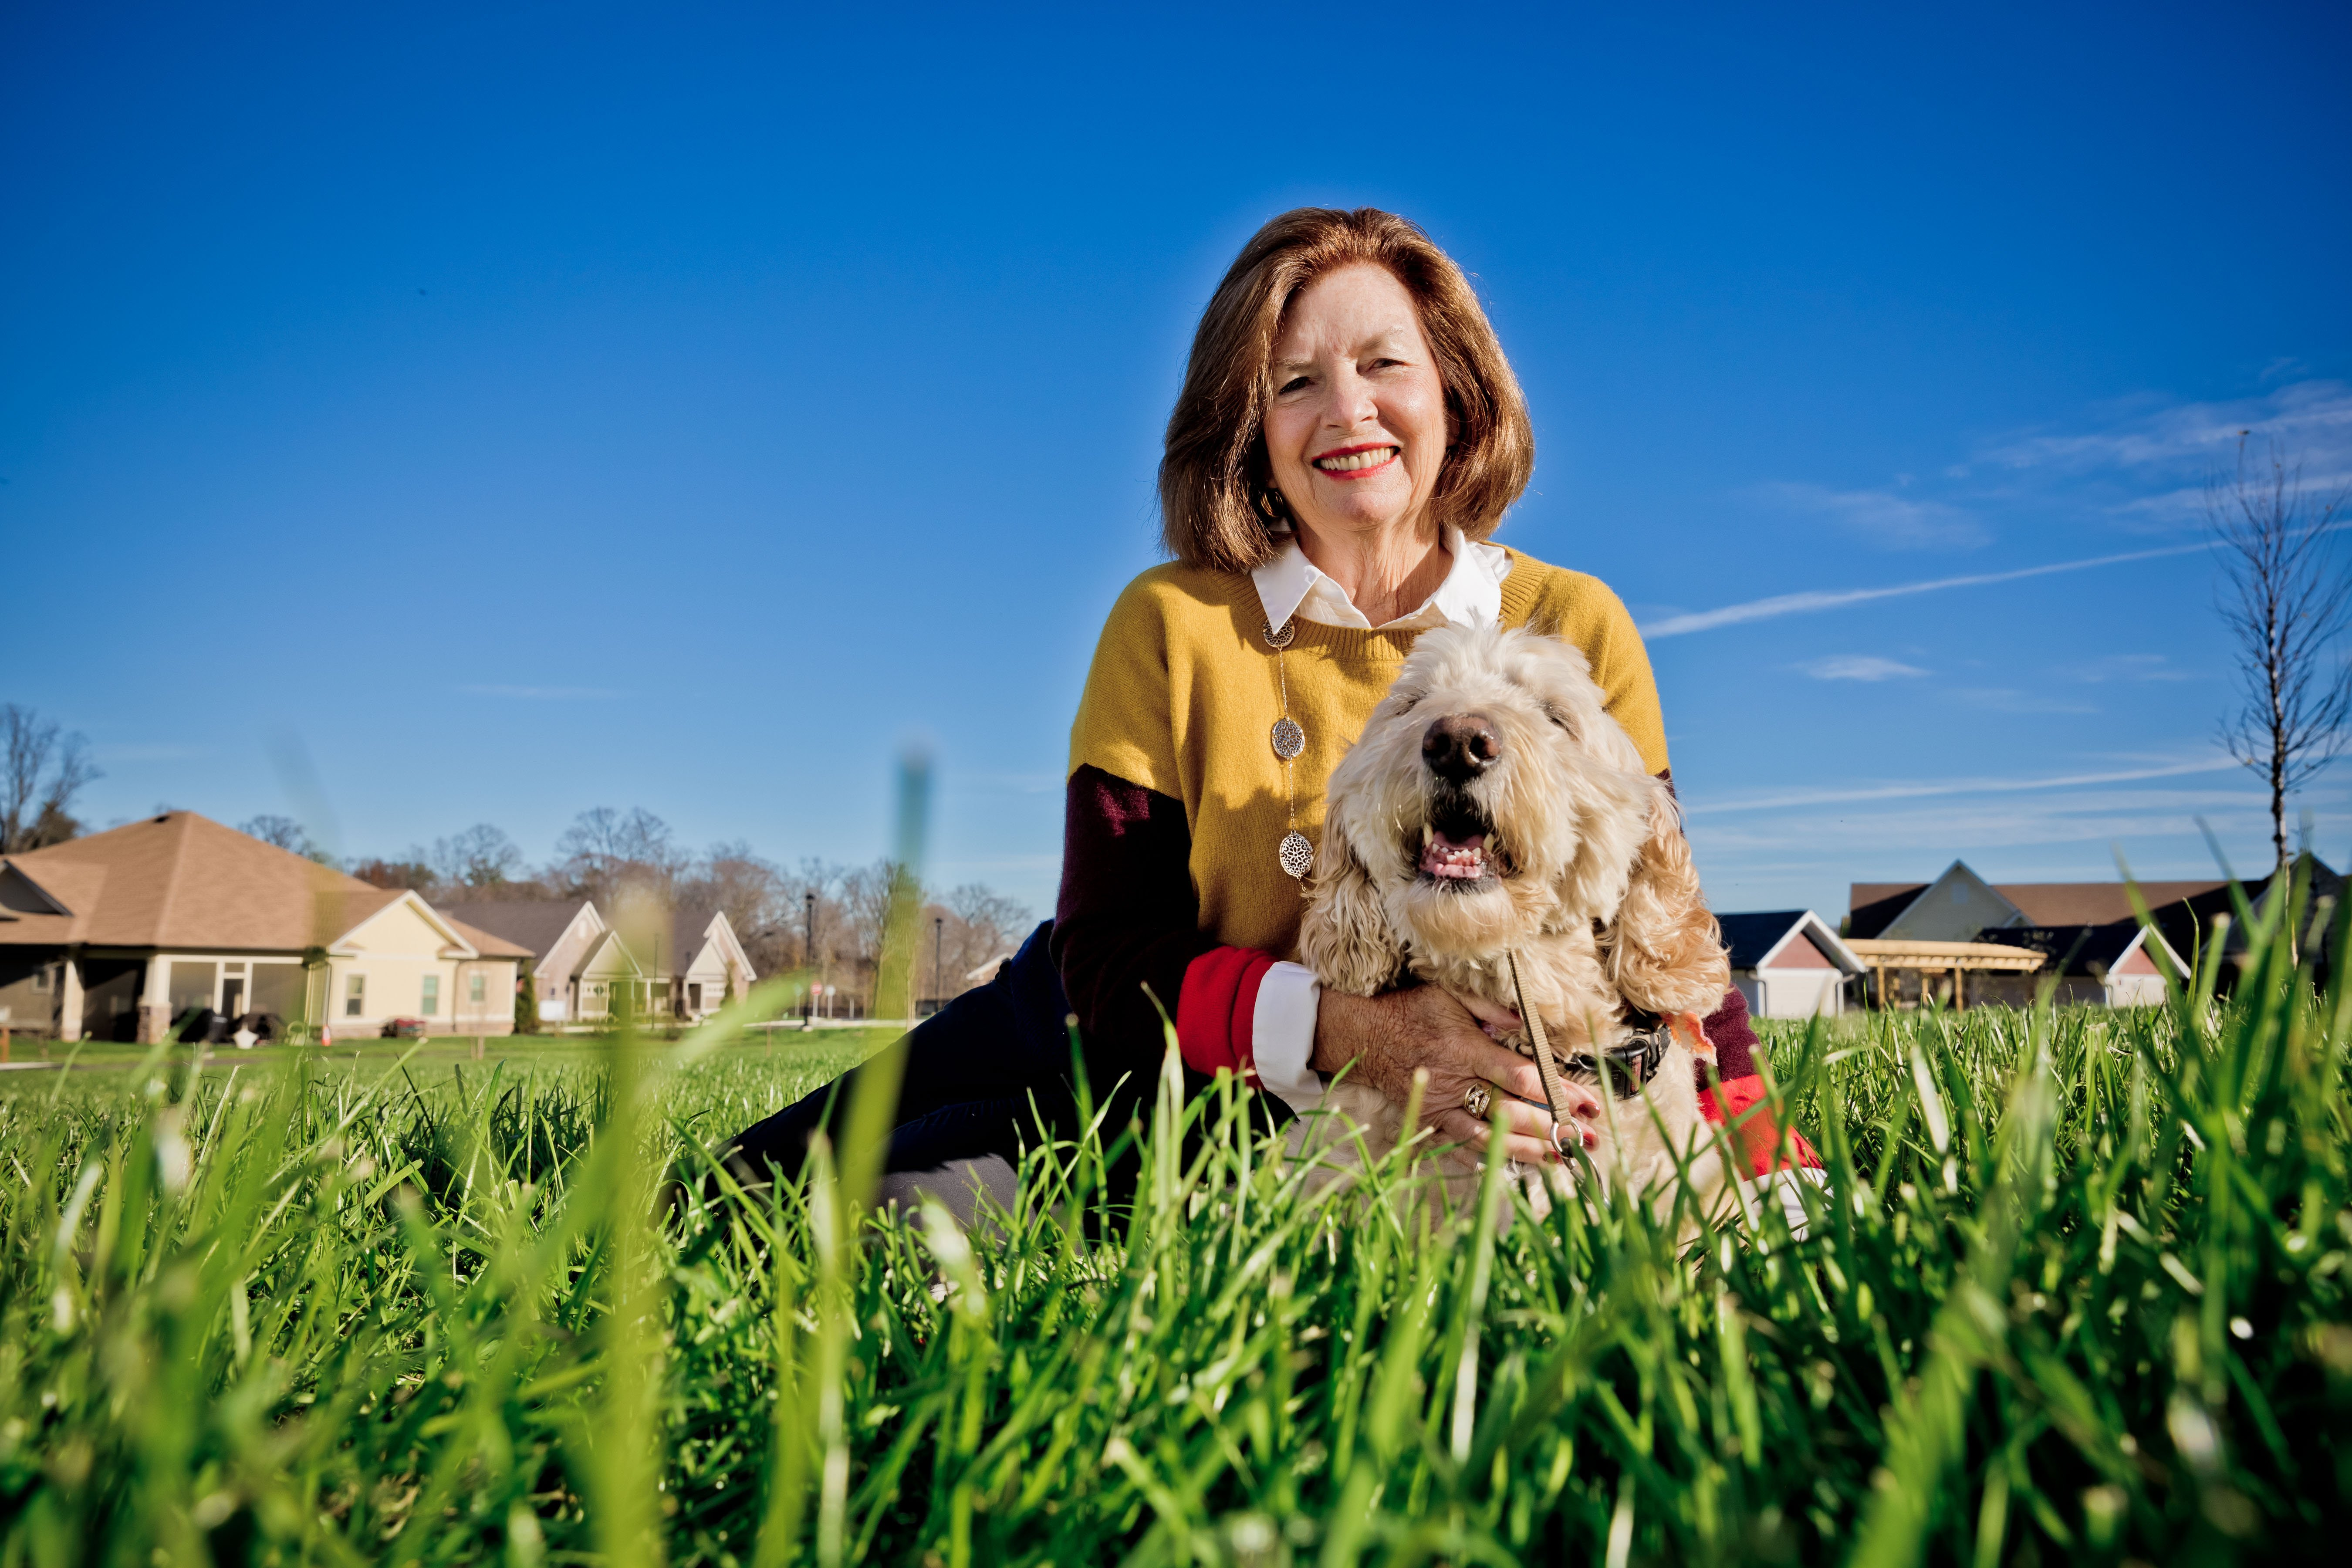 woman and dog sitting in grass